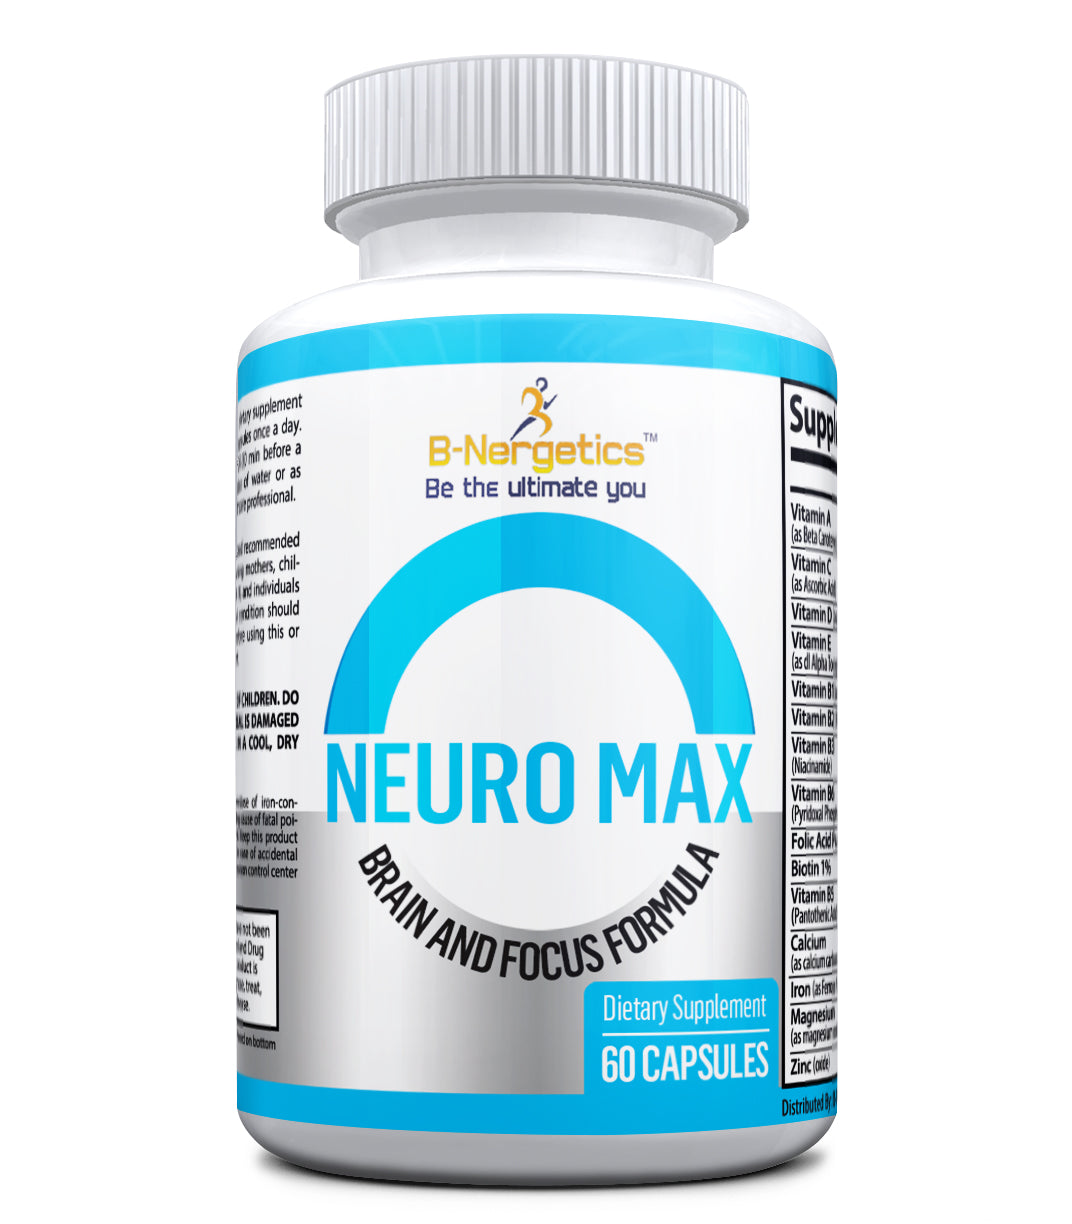 Neuro Max Brain and Focus Capsules - b-nergetics.com